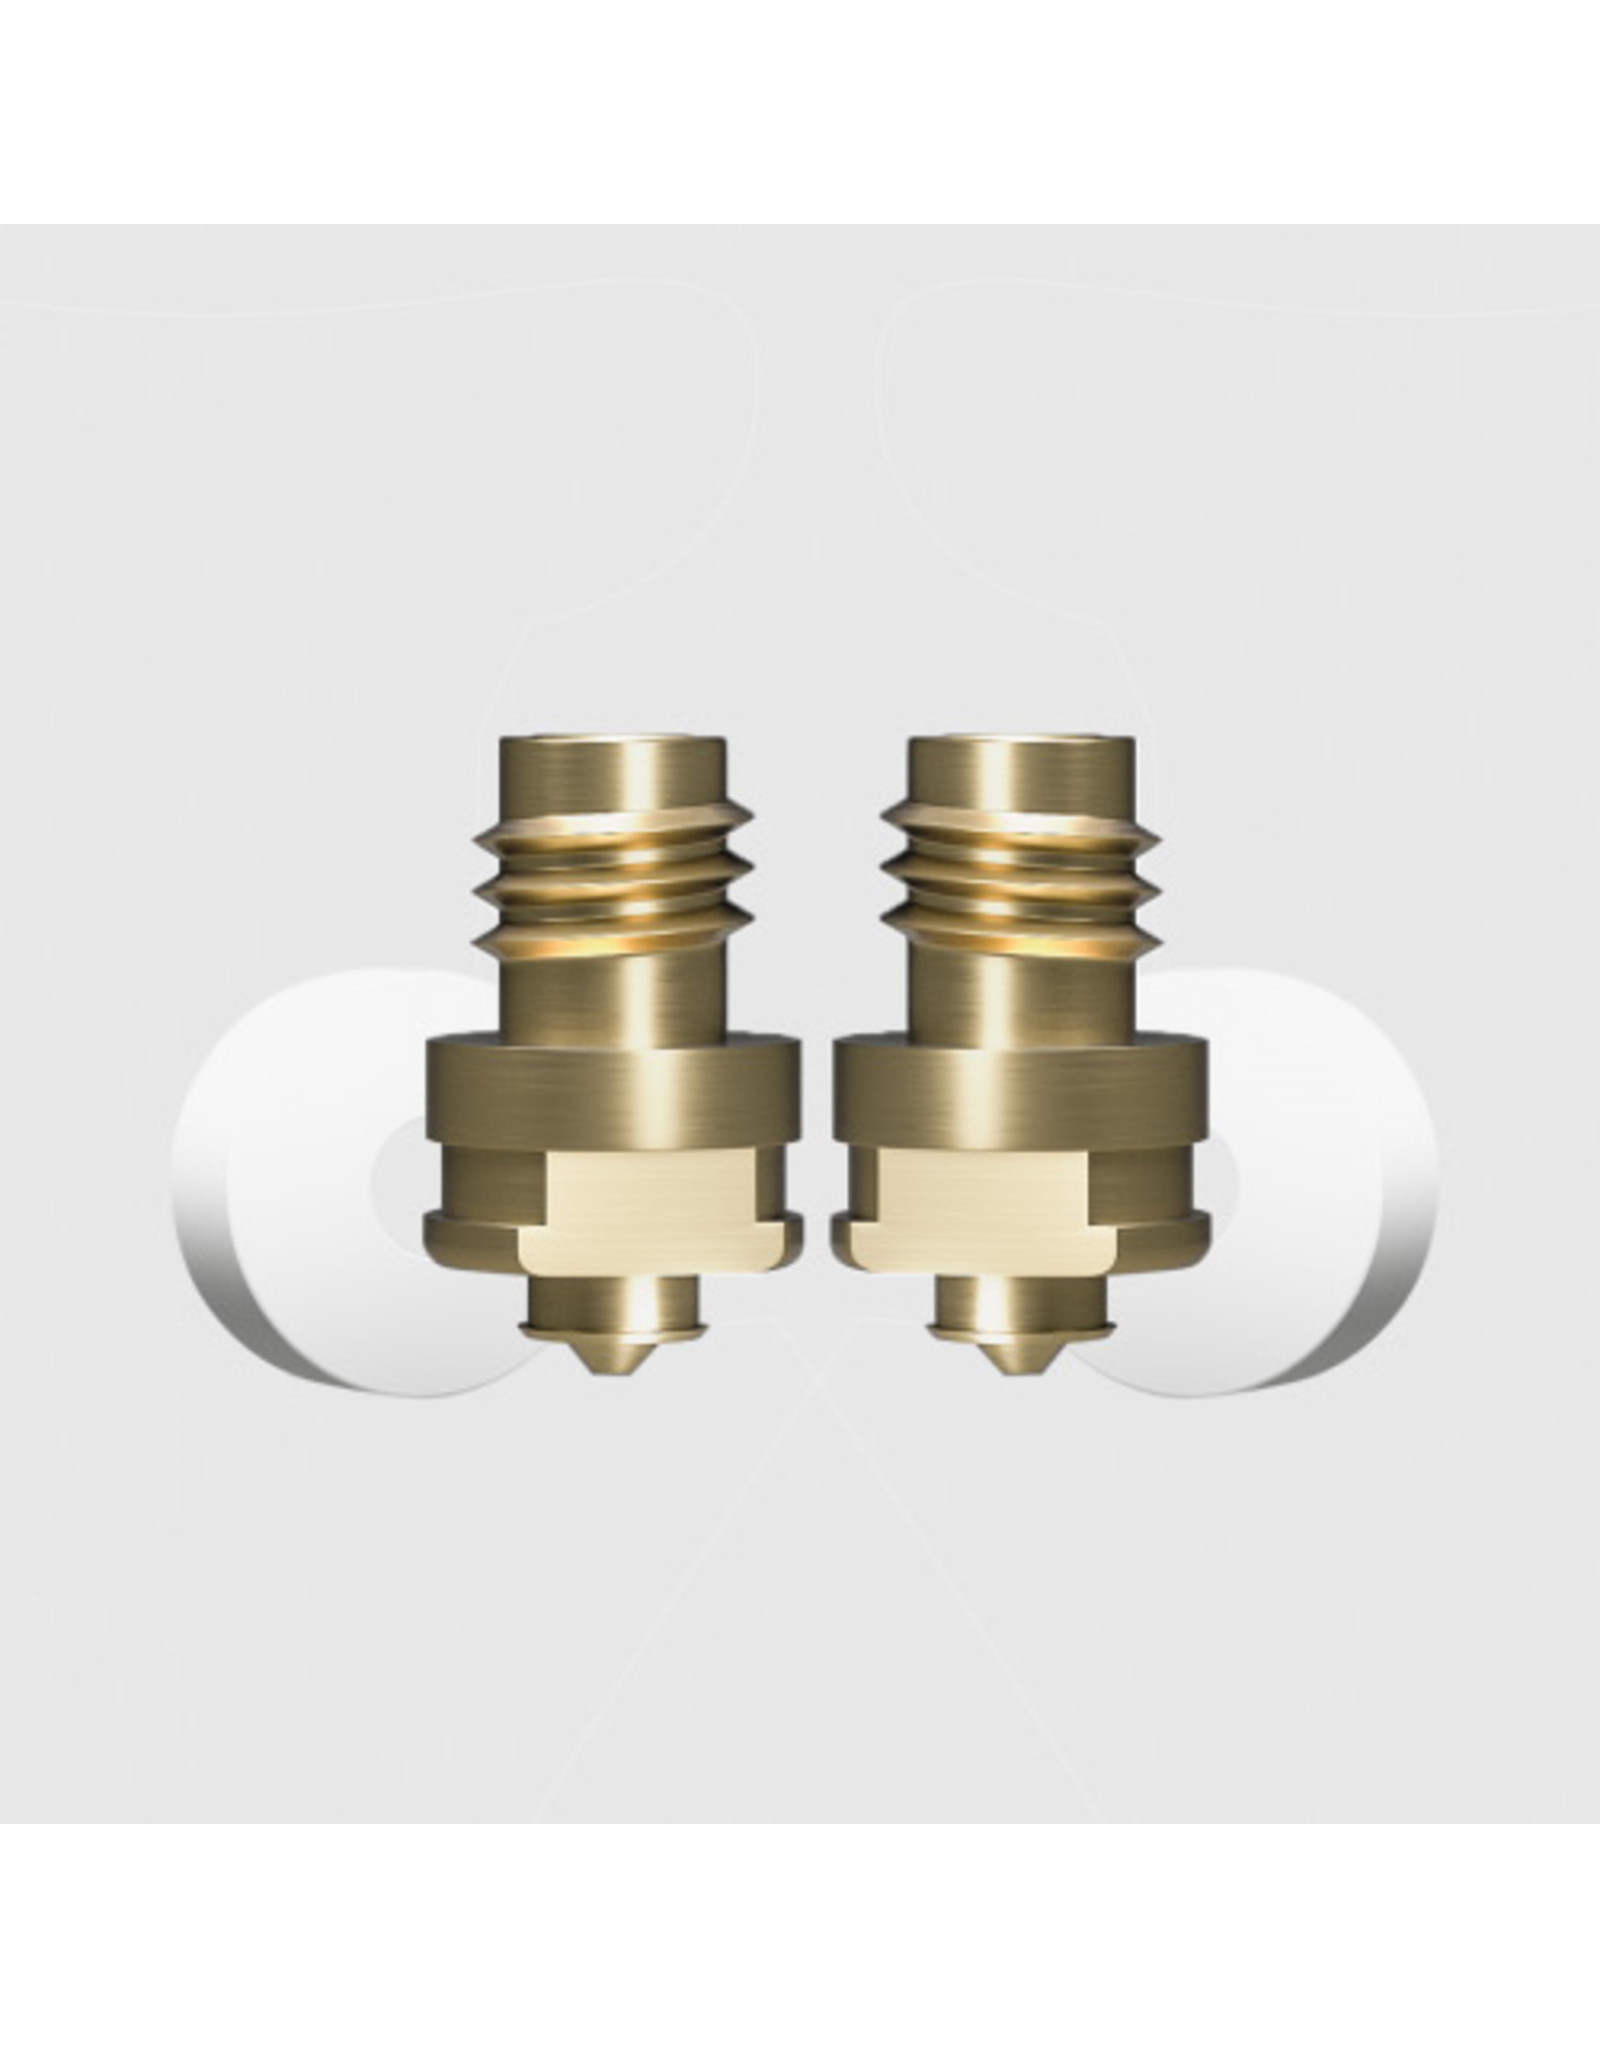 Zortrax Zortrax Nozzle set for M-Series Plus M200 Plus / M300 Plus / M300 Dual 0.3 & 0.6 mm